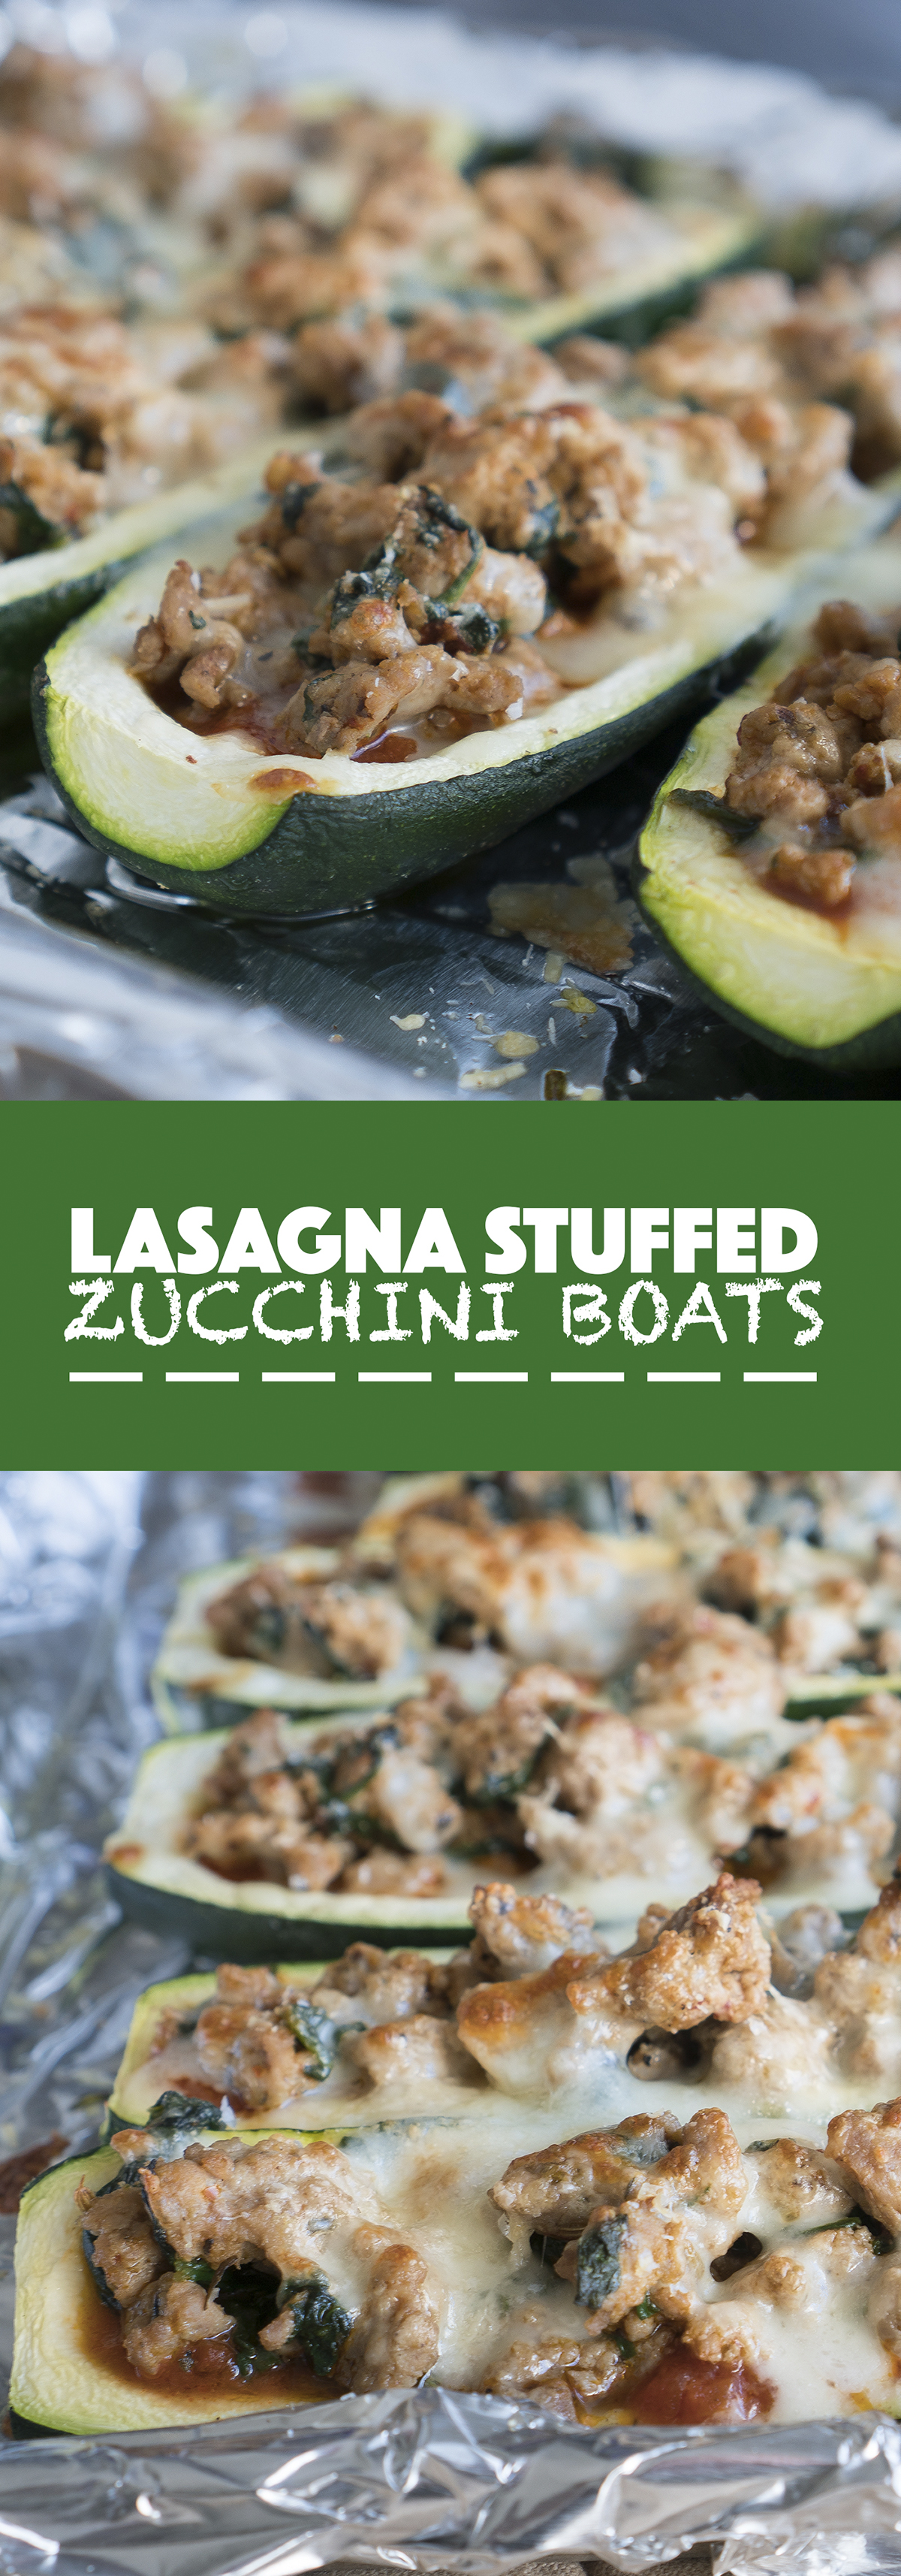 Lasagna Stuffed Zucchini Boats – Healthy, gluten-free recipe for Lasagna Stuffed Zucchini Boats! Using zucchini, tomato-basil sauce, chopped spinach, mozzarella cheese, parmesan, and ground turkey flavored to taste like crumbled Italian sausage. Low carb, low fat, & protein-packed ♥ | freeyourfork.com